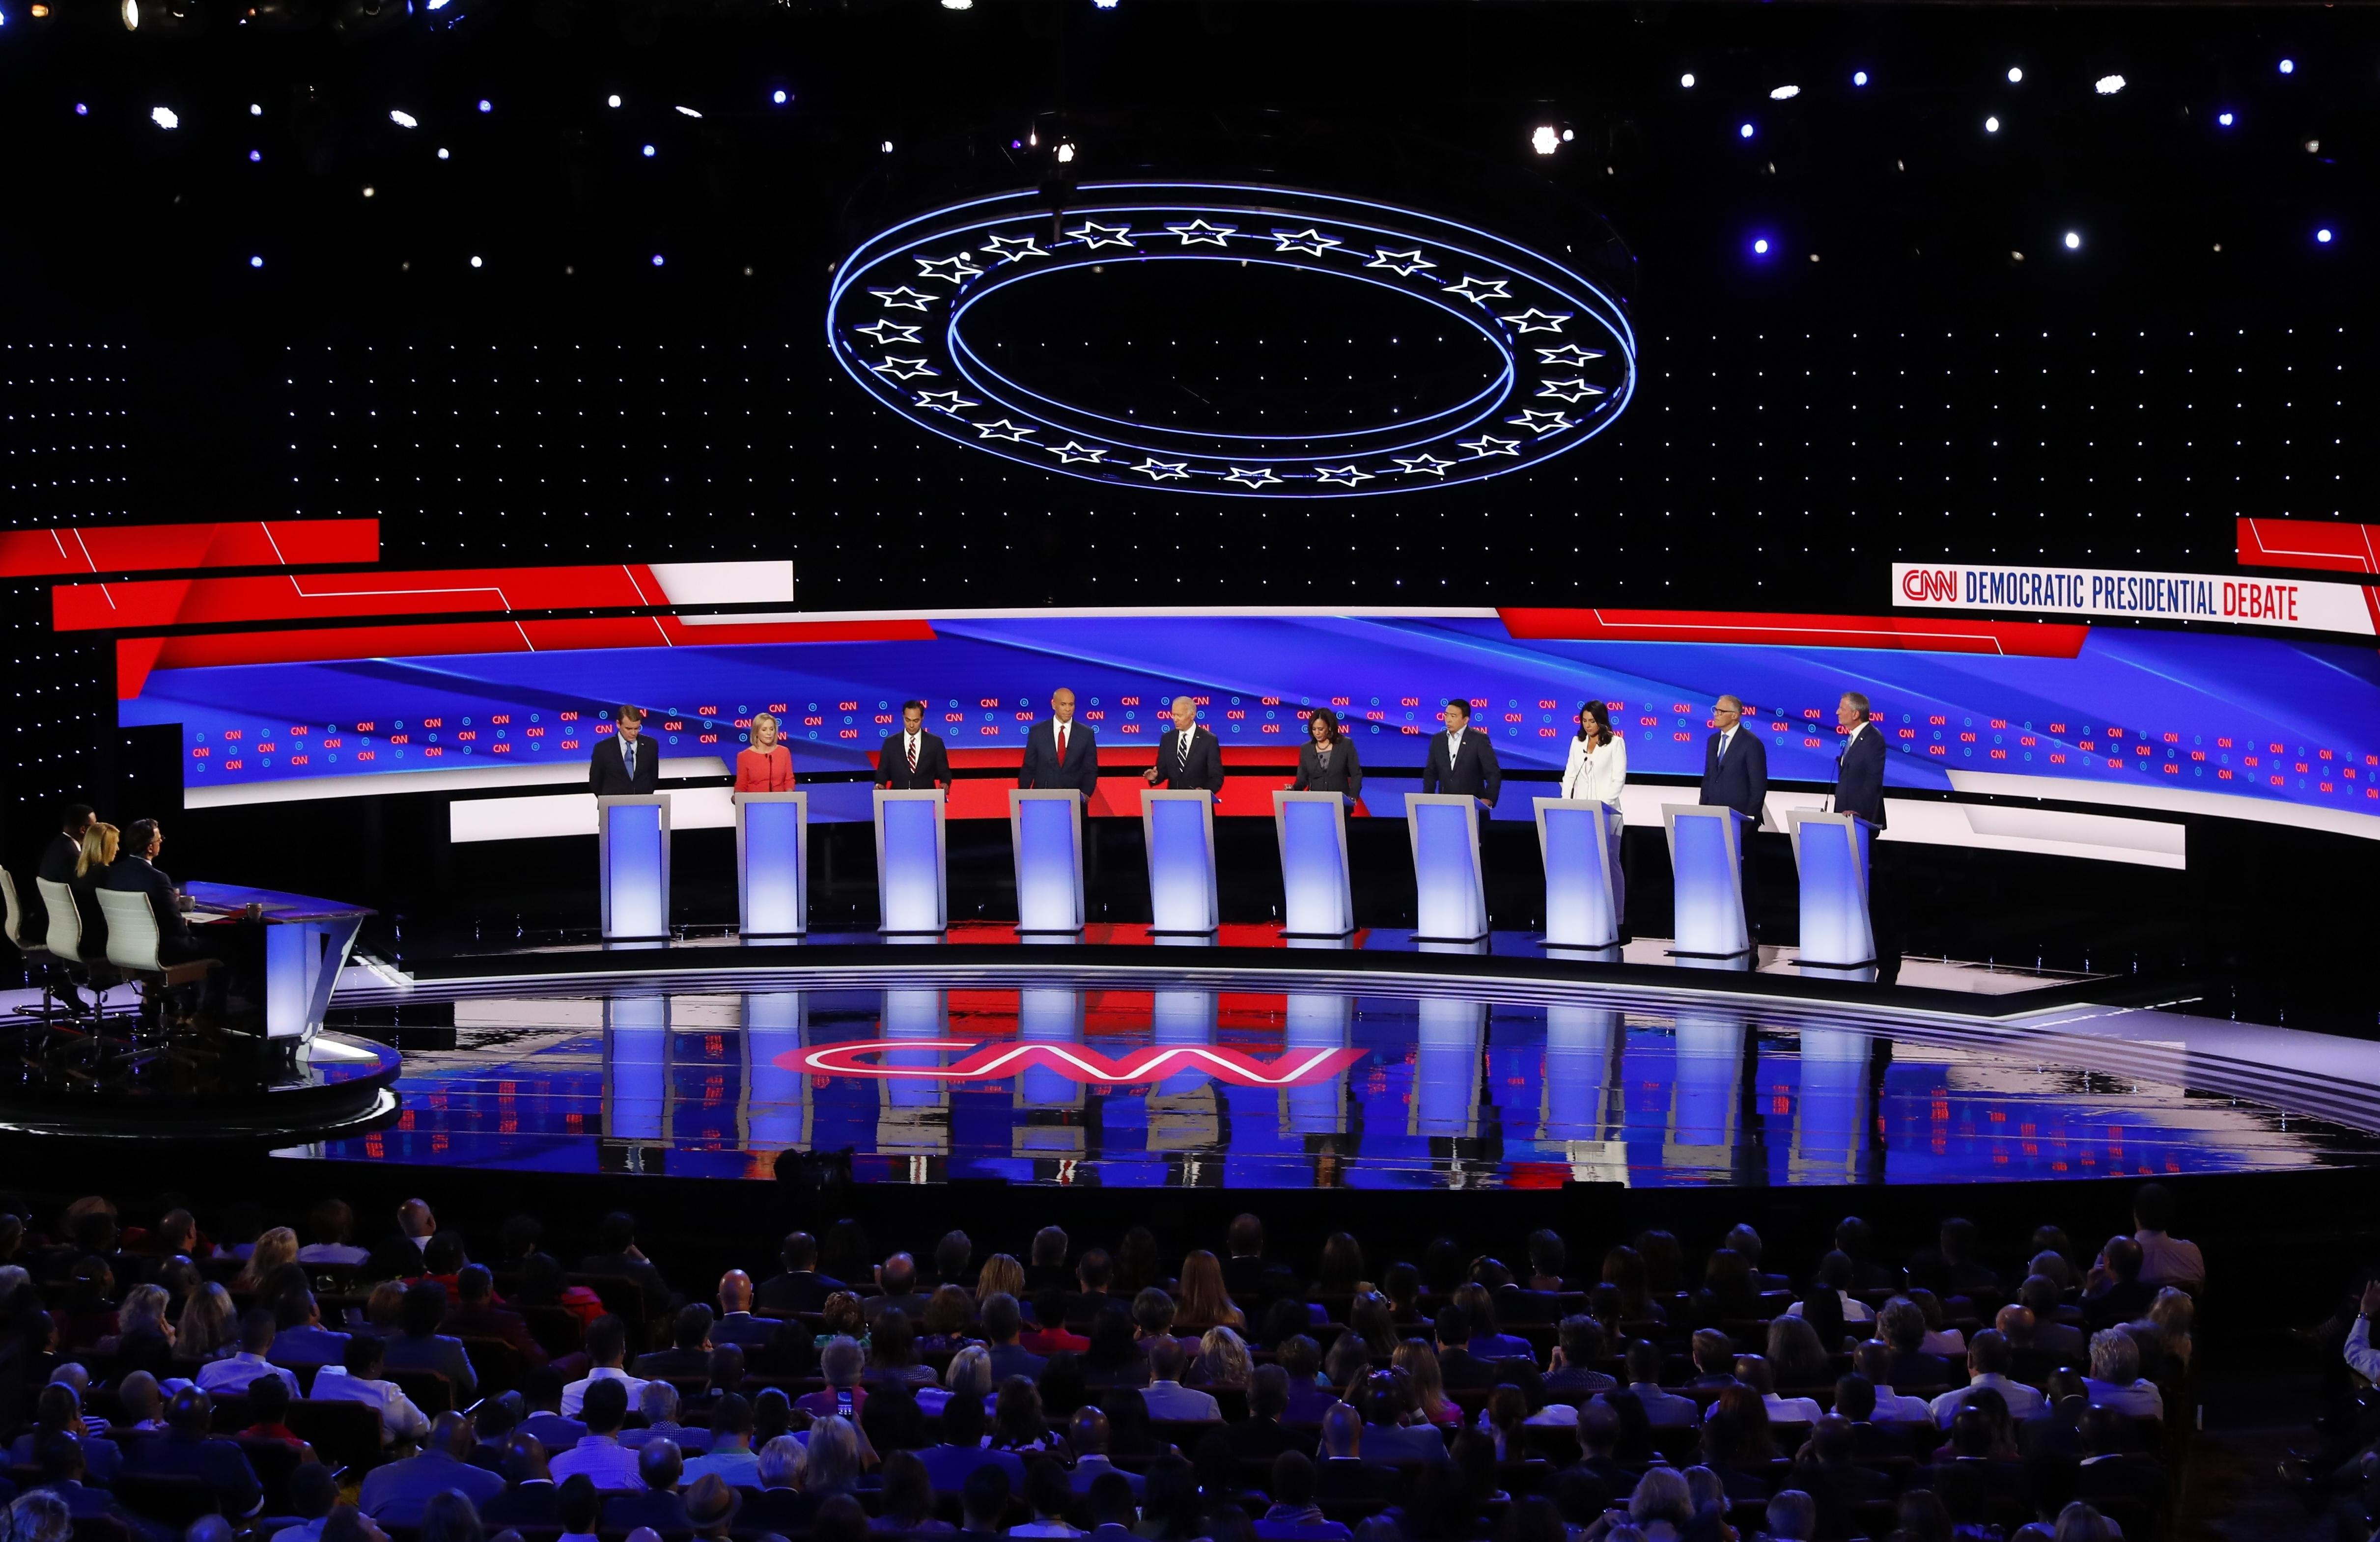 Debate questions that might shed some light